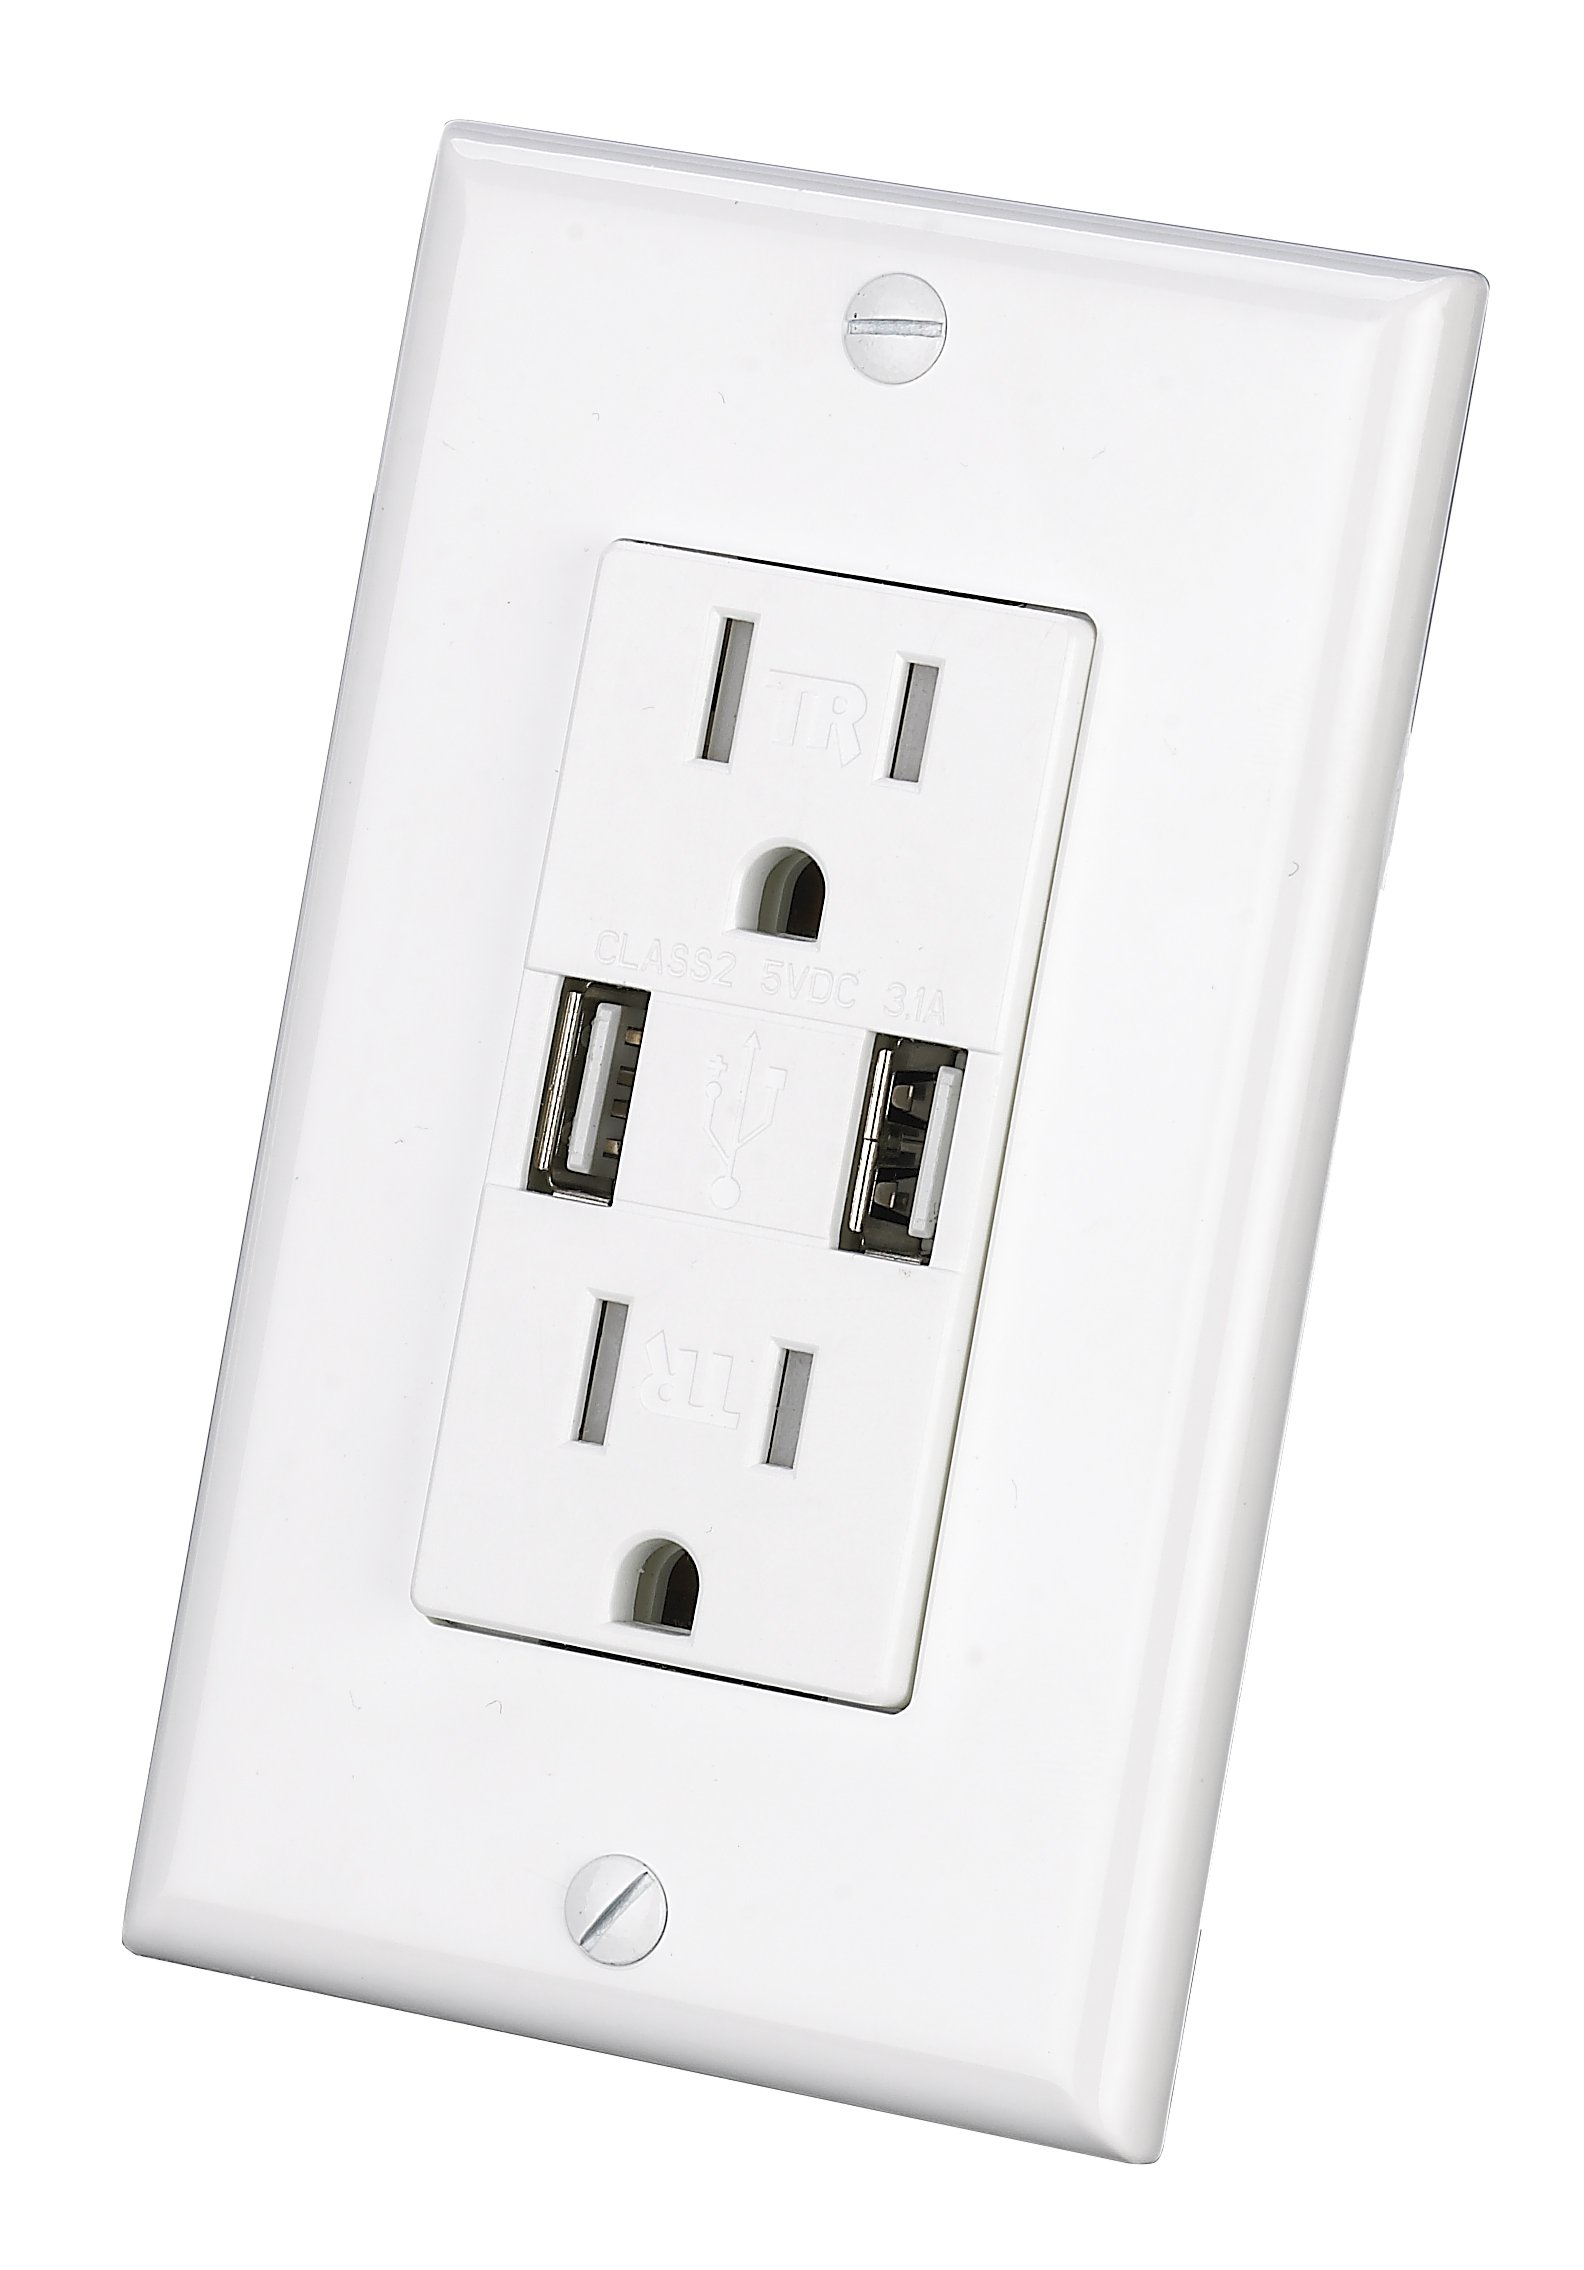 Outlet with USB Charger Wall Dual High Speed Duplex Receptacle 15-Amp, Smart 3.1A Quick Charging Capability, Tamper Resistant Outlet Wall plate Included UL Listed New Upgrade White (USB outlet 1pack) by MICMI (Image #1)